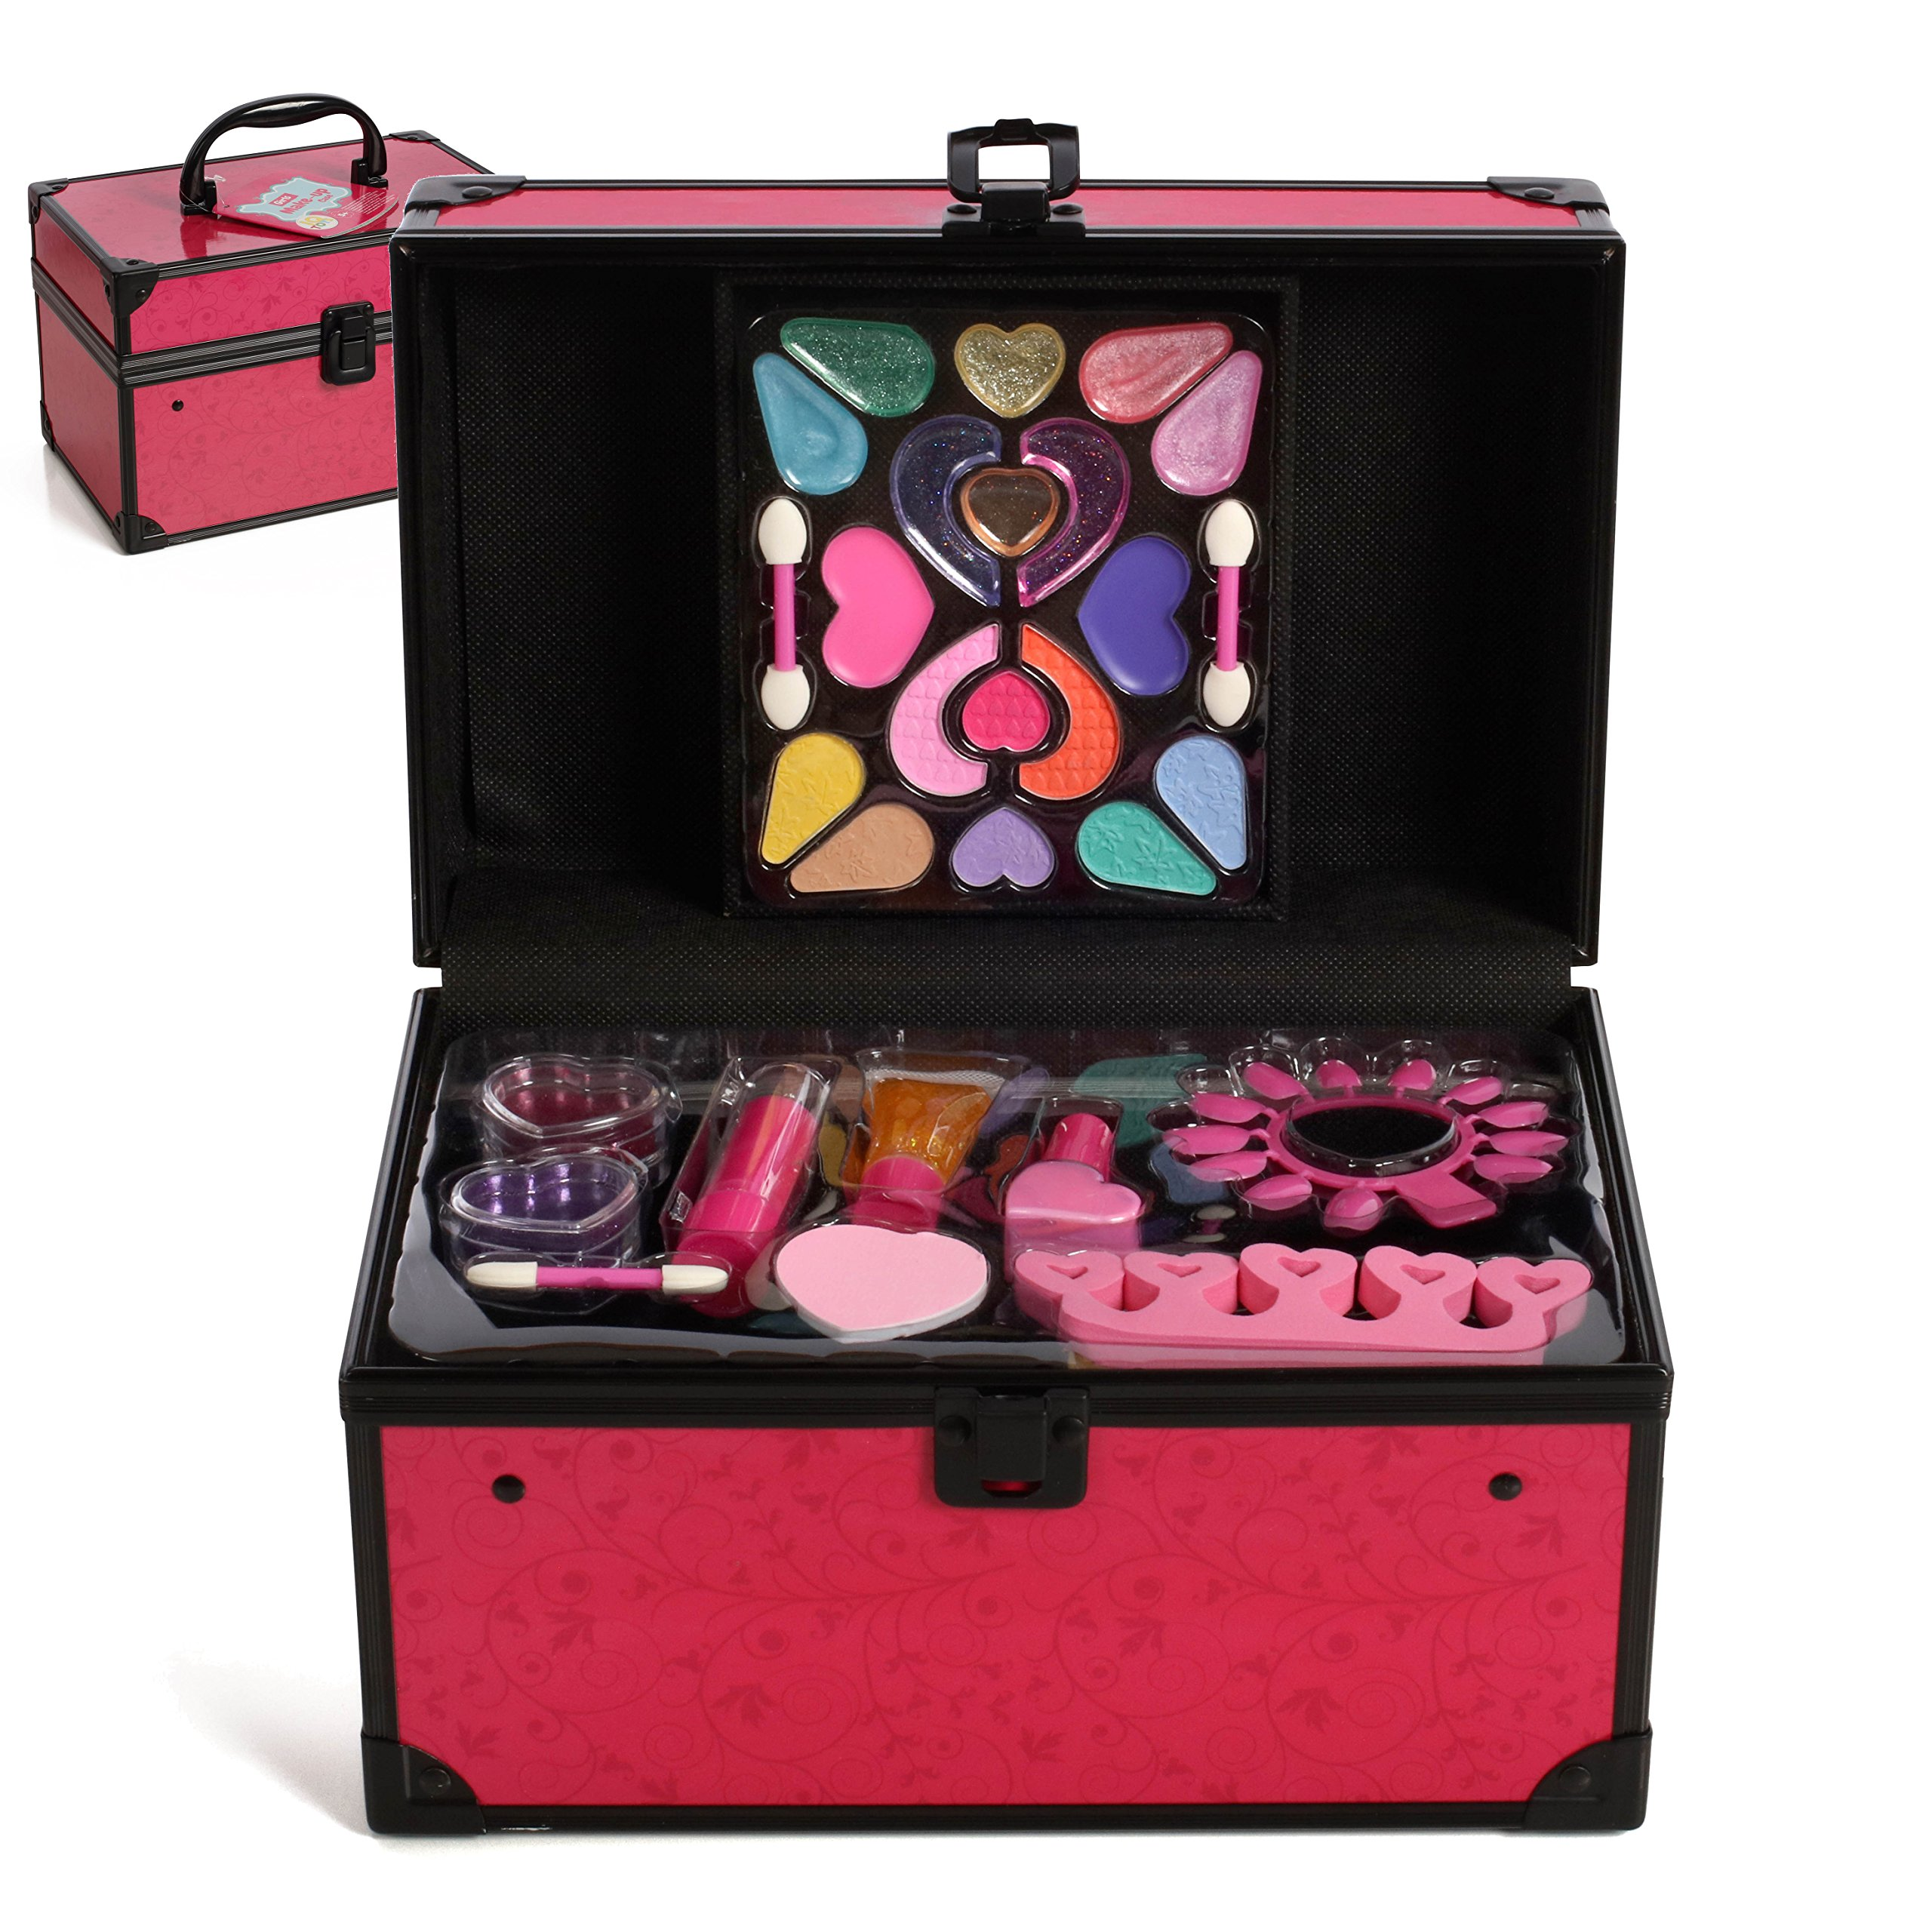 IQ Toys Deluxe All in One Travel Girls Makeup Set